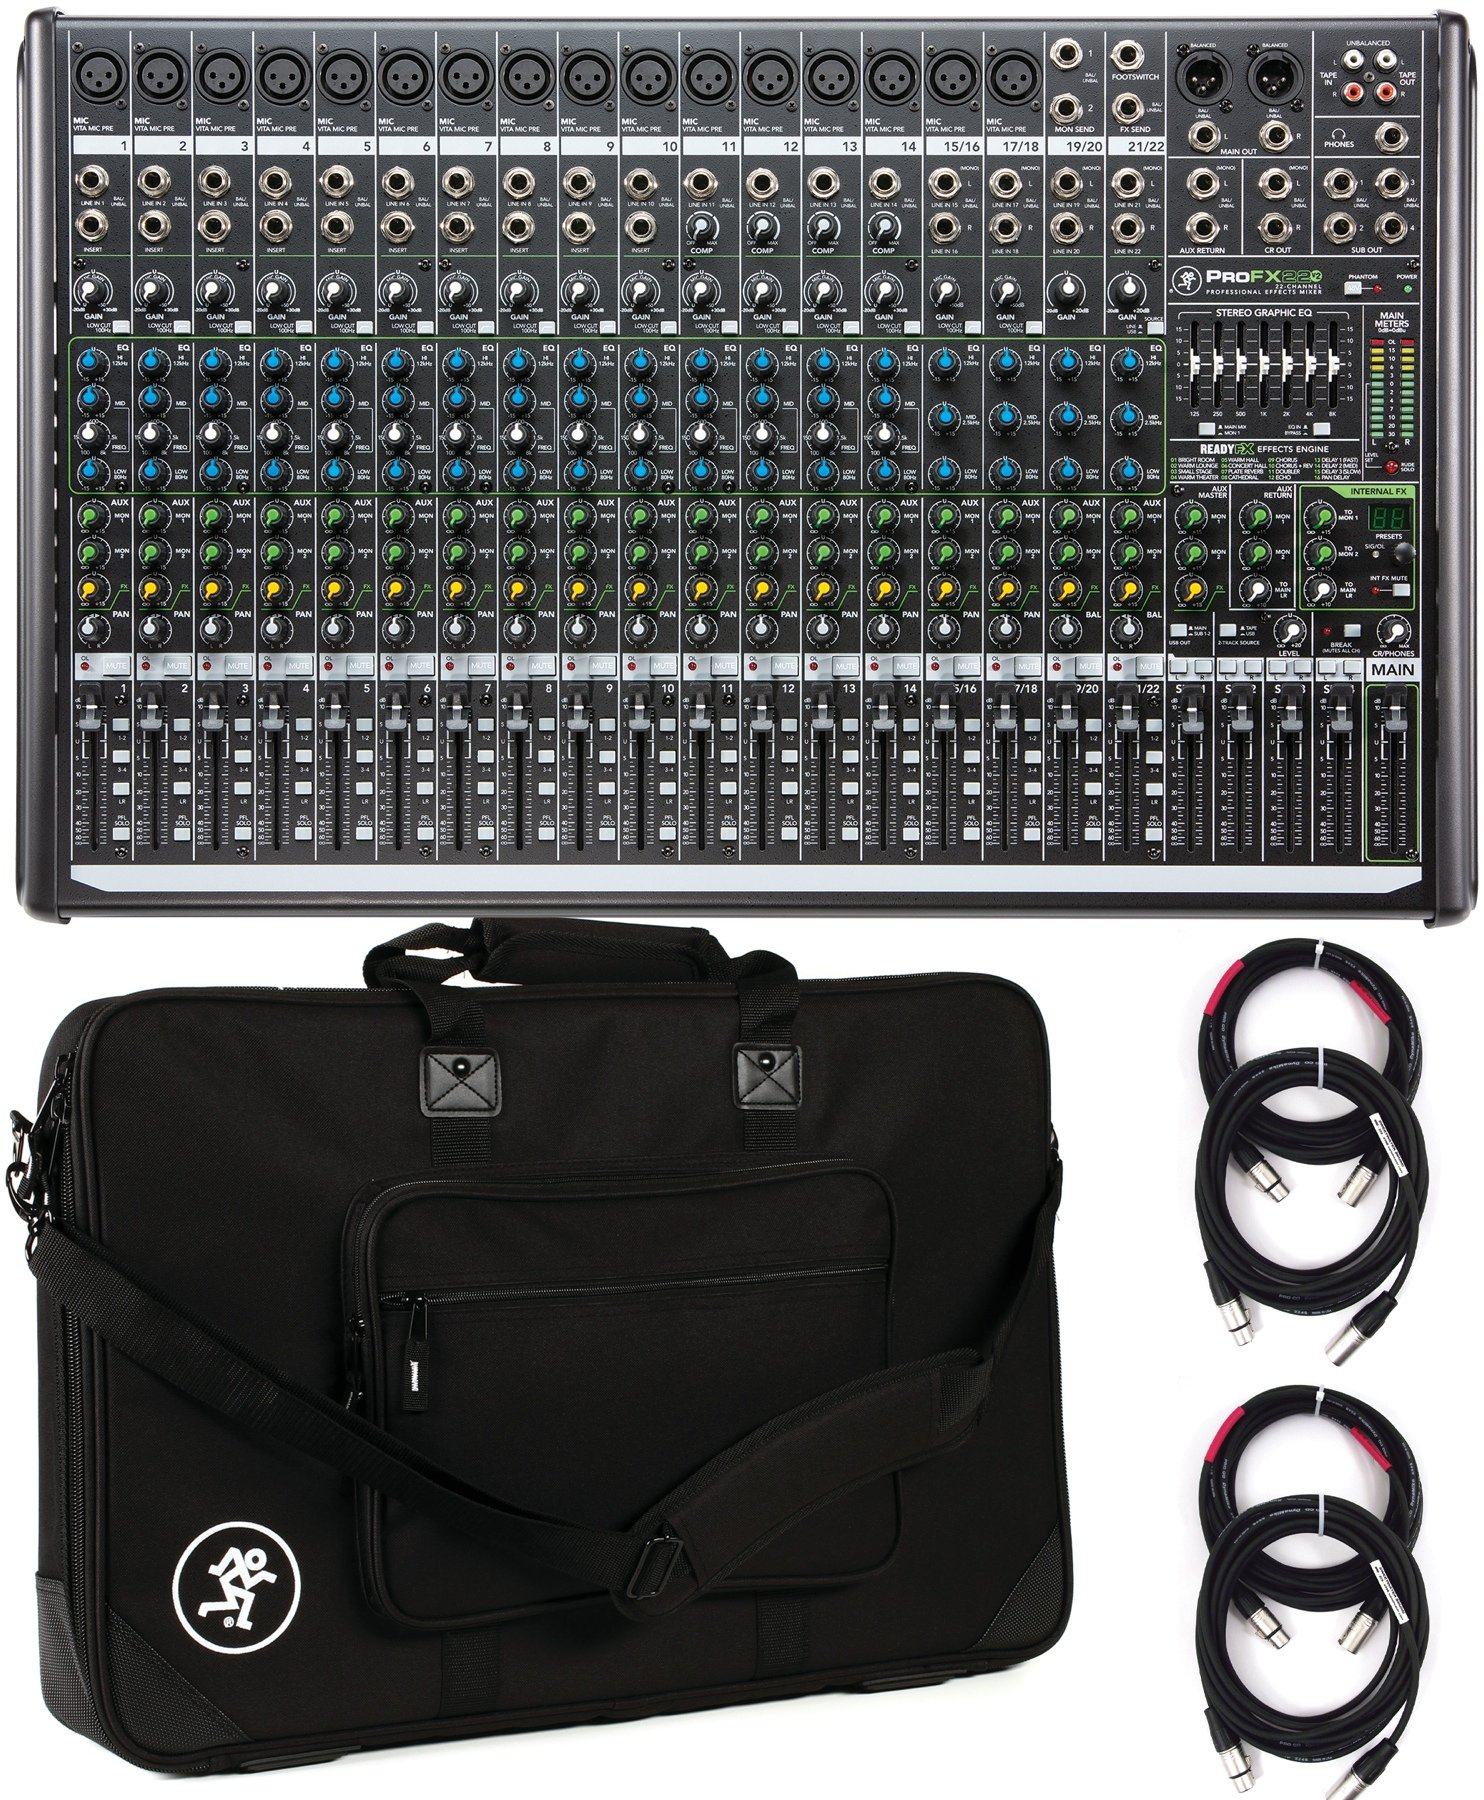 Mackie Profx22v2 Mixer With Usb And Effects Sweetwater Profx8 V2